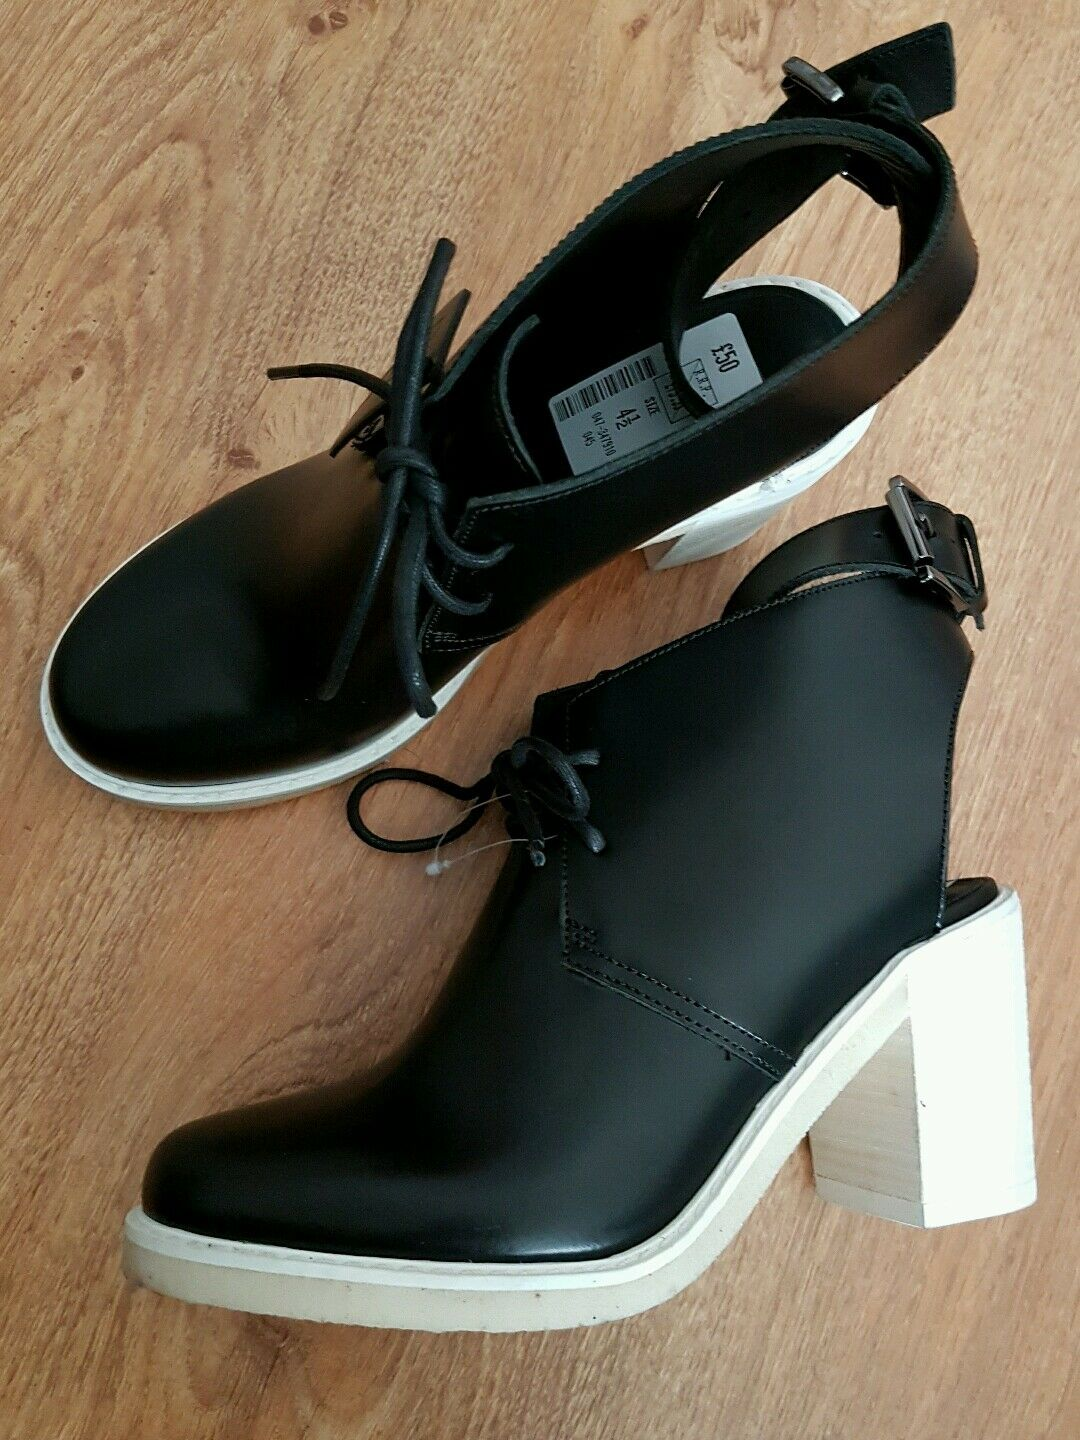 NEW * CLARKS* Size 4.5, DESERT  DELTA BLACK LEATHER ANKLE  BOOTS SHOES